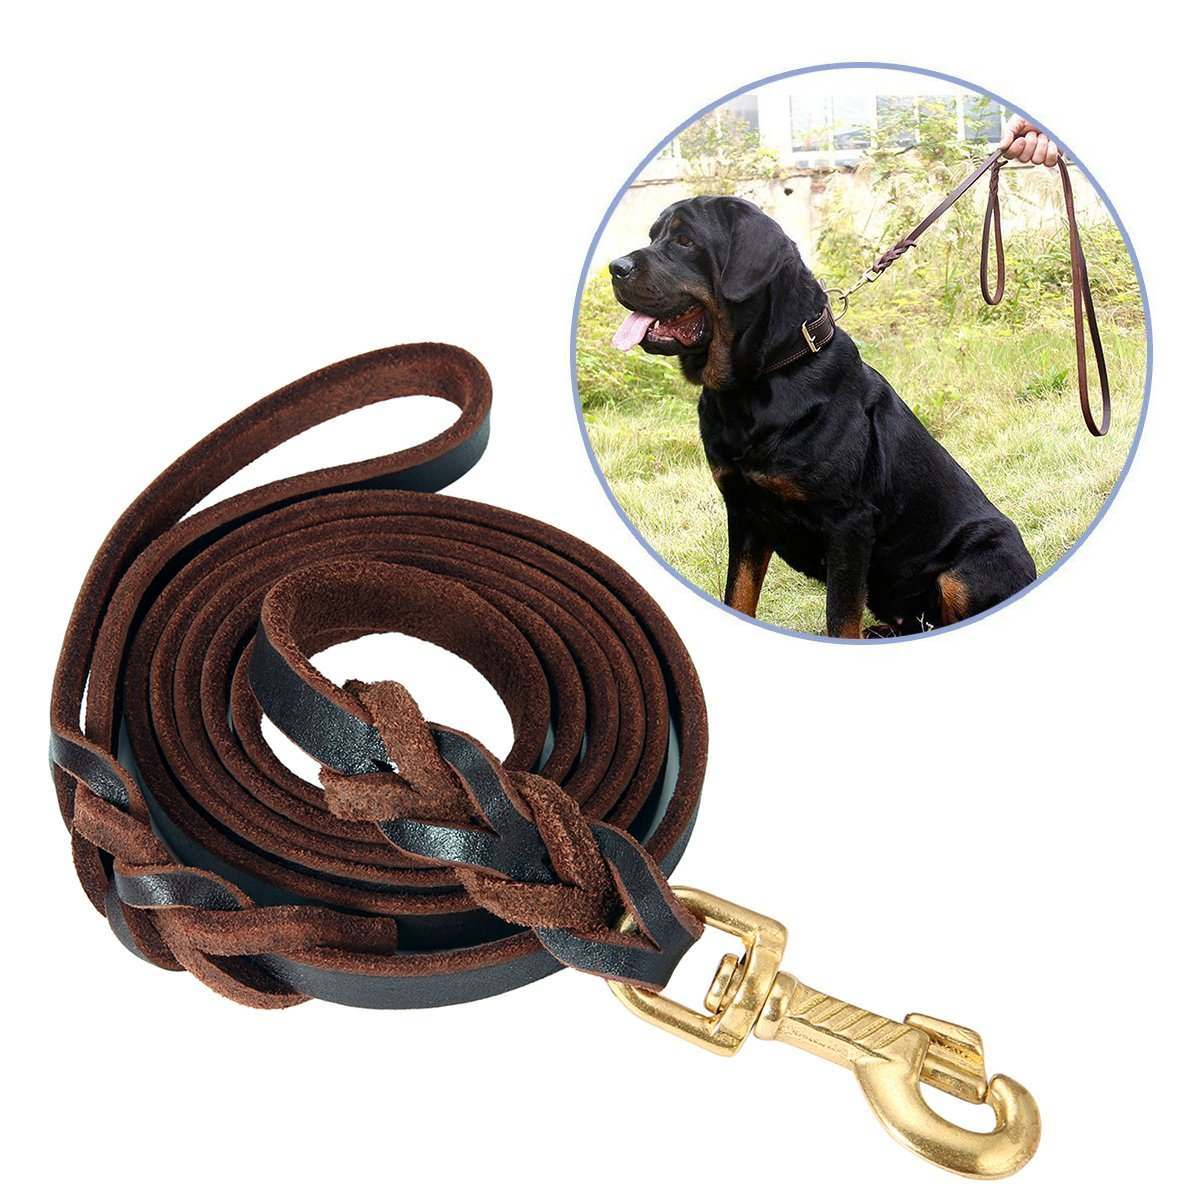 FOCUSPET Leather Dog Leash 6 ft Leather Dog Training Leash Pet Braided Dog Leash for Large Medium Leads Rope Dogs Walking&Training (1 2 Inch,Brown)